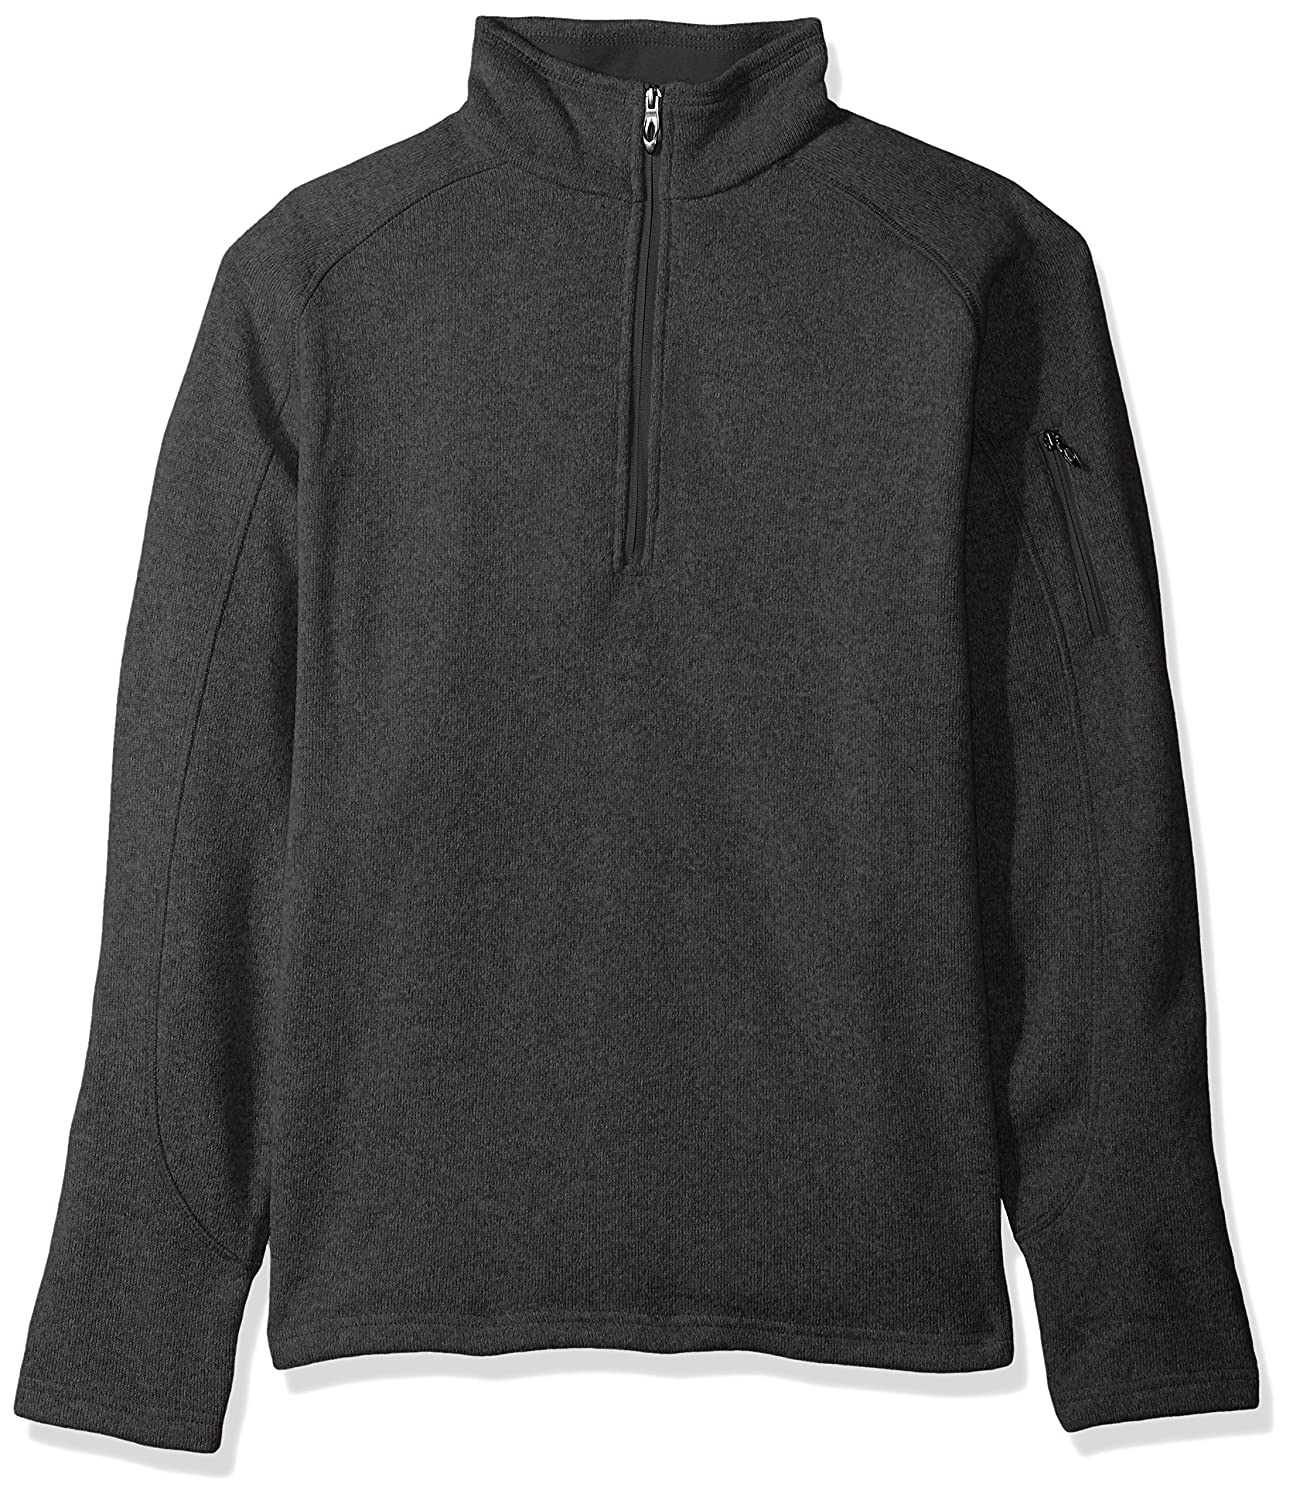 Key Apparel Polar King Men's Quarter Zip Sweater Knit Pullover